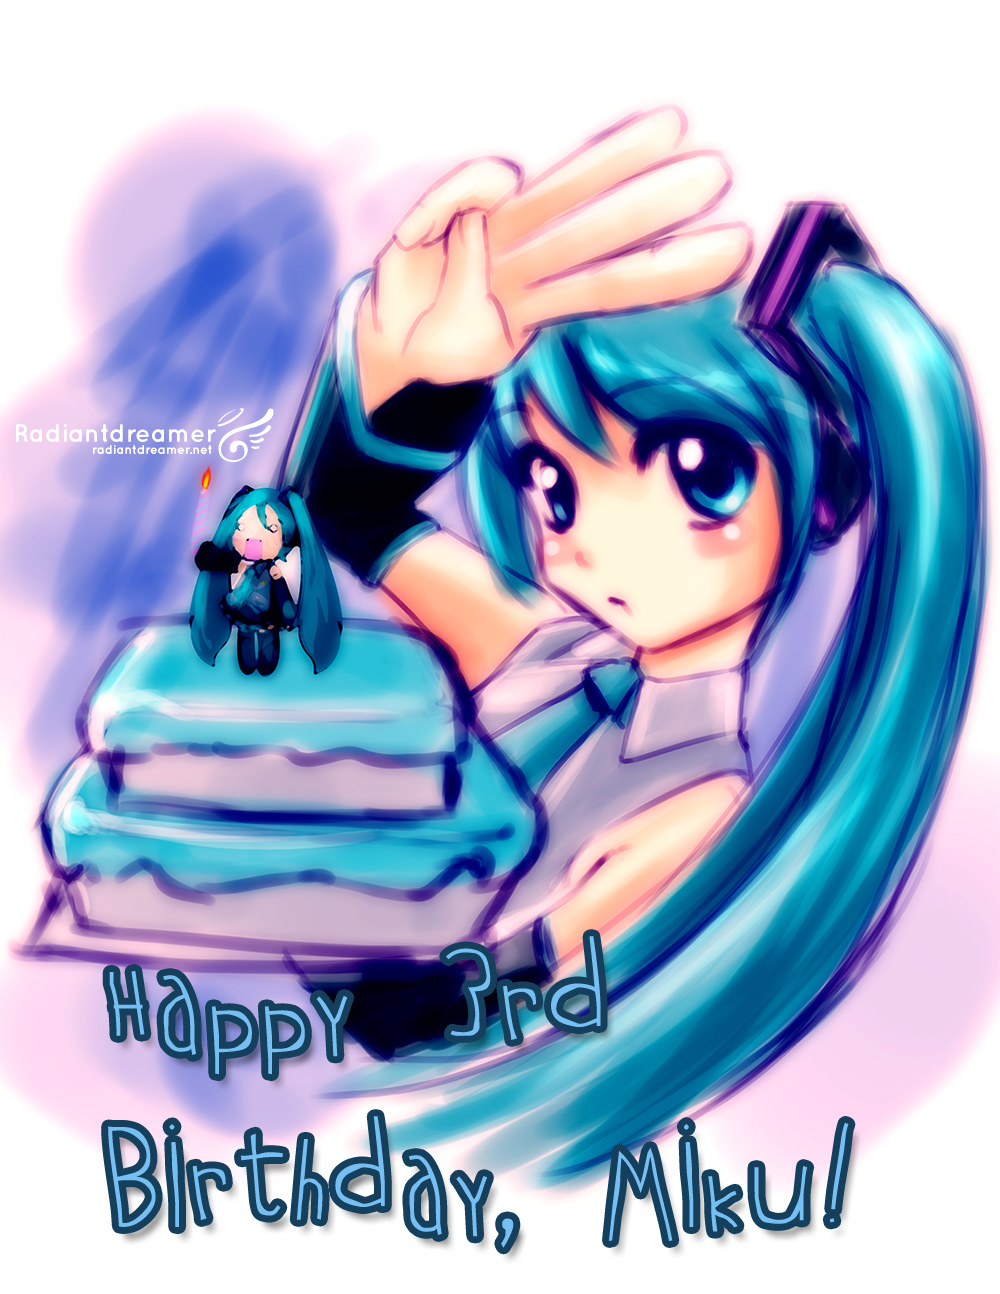 Happy Birthday, Miku Hatsune!